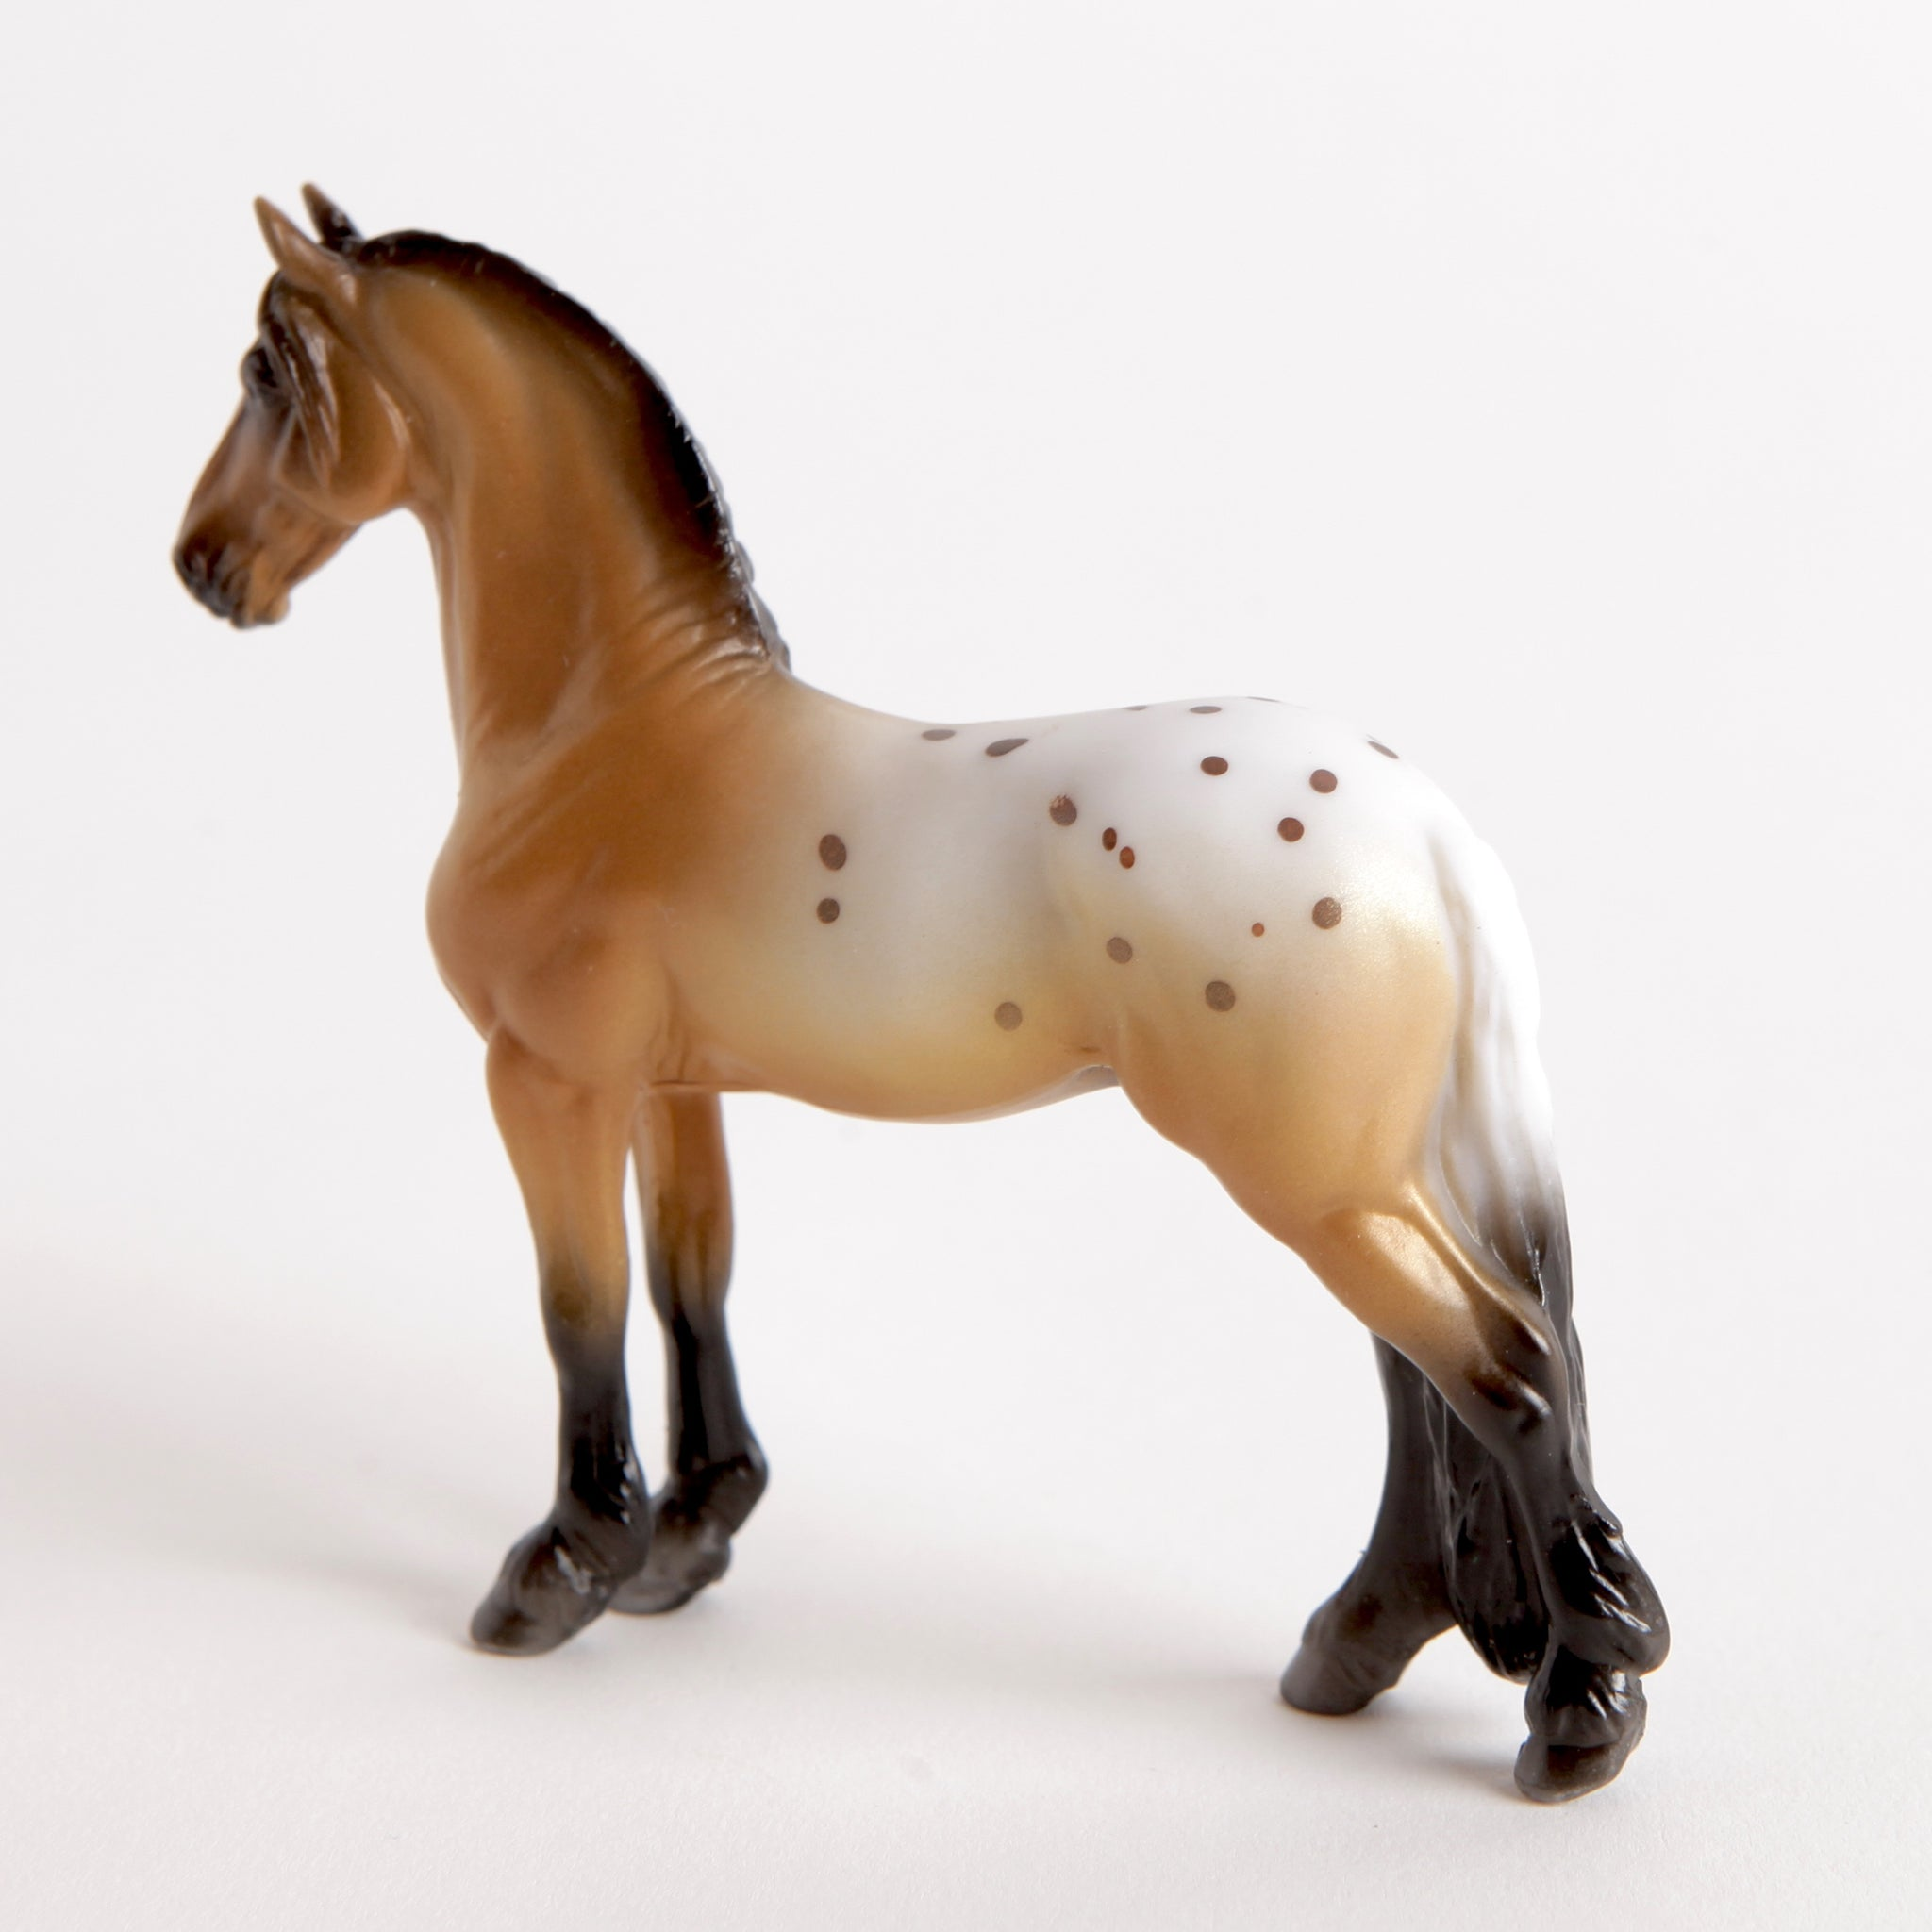 Breyer Mystery Horse Surprise Appaloosa Django